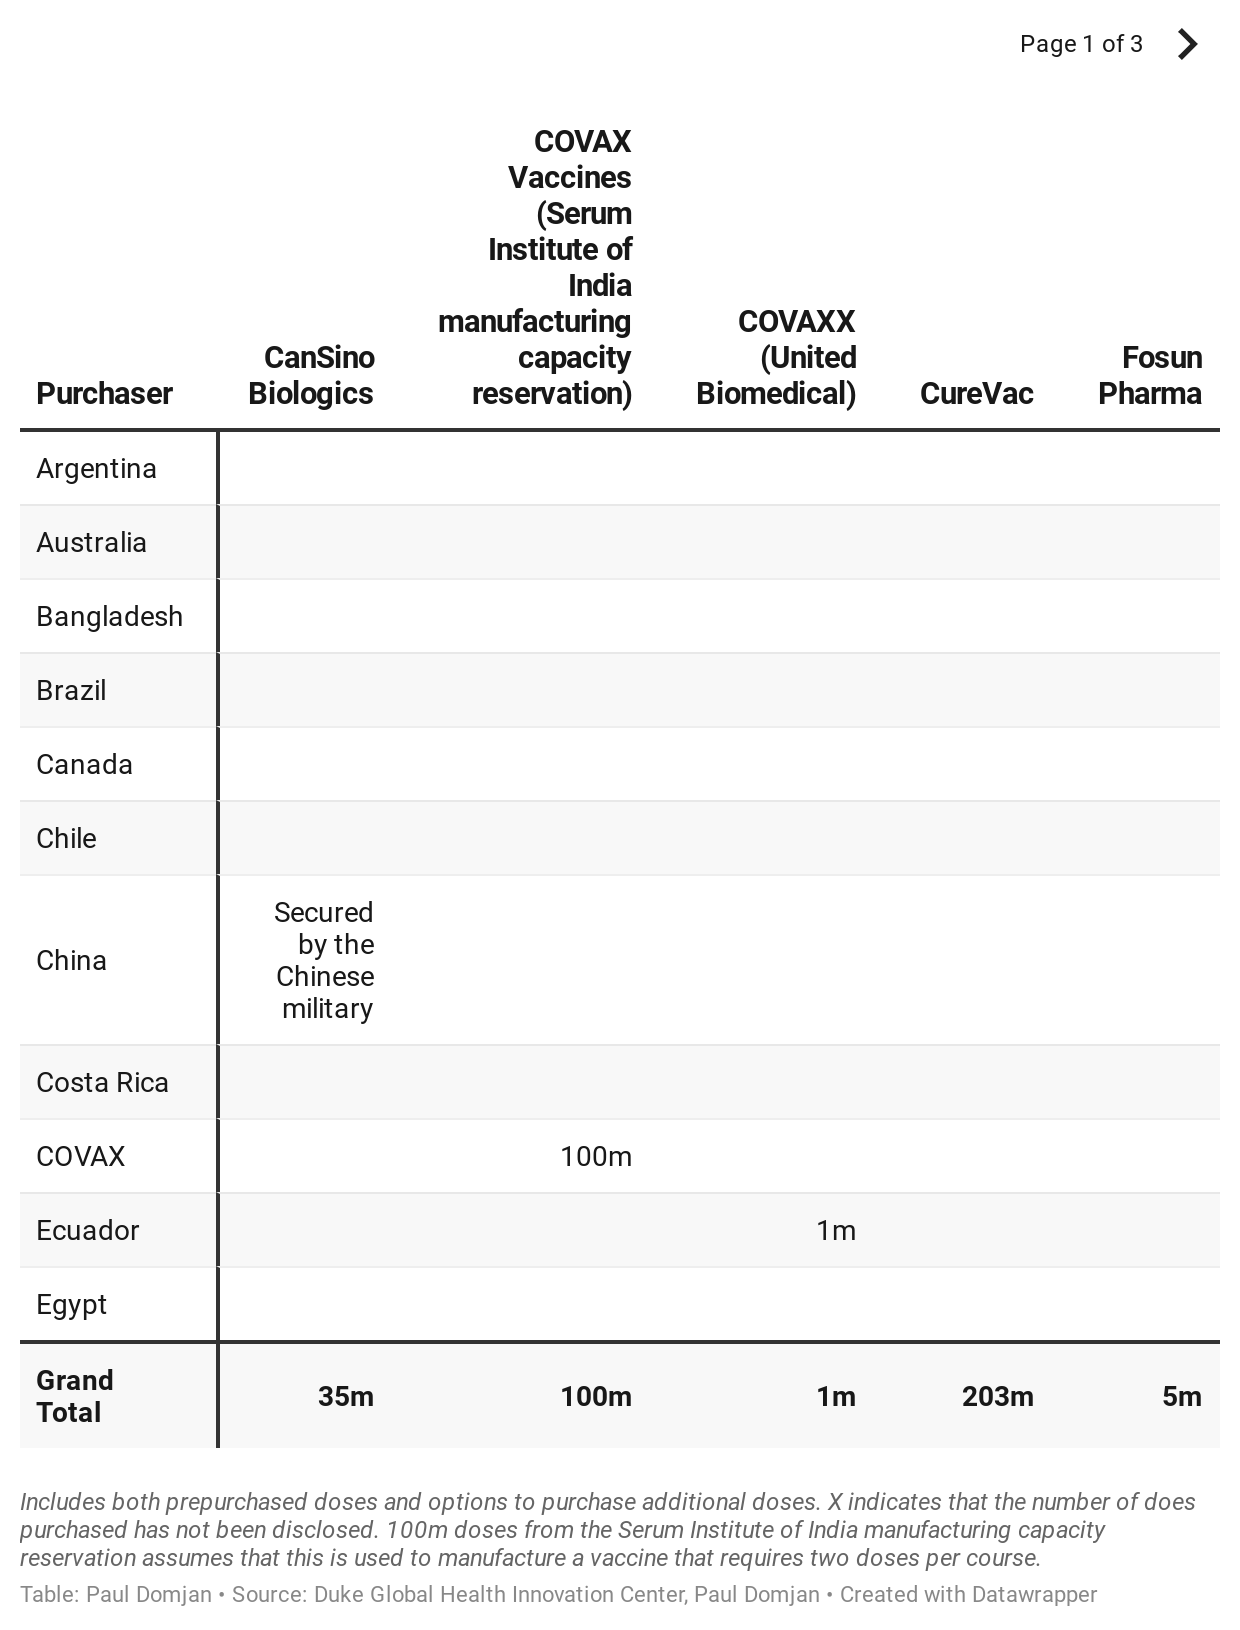 Full table of vaccine pre-purchases, including both pre-purchased doses and options to buy additional doses